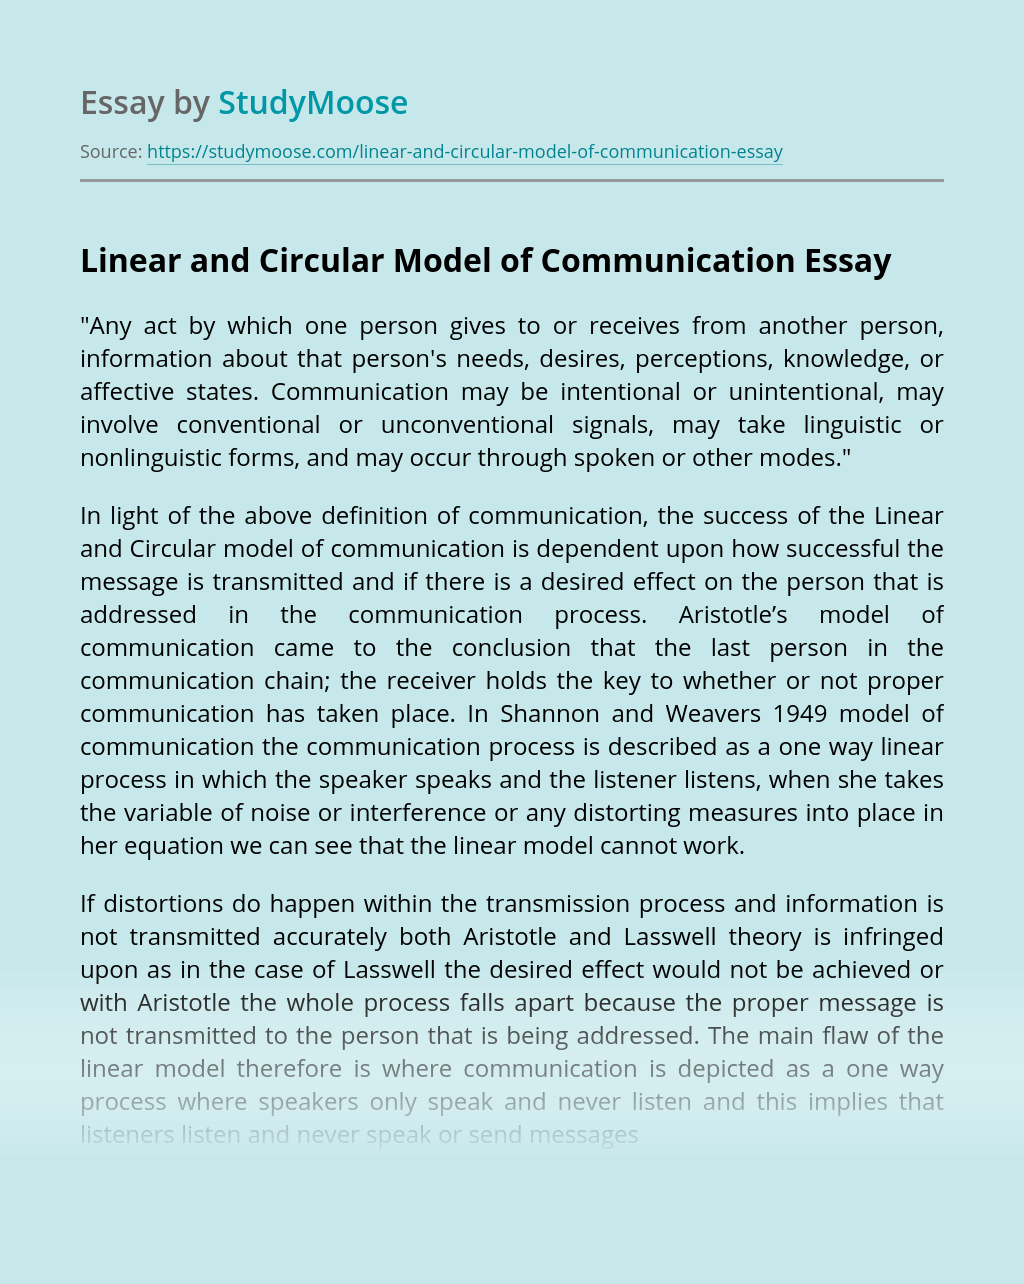 Linear and Circular Model of Communication